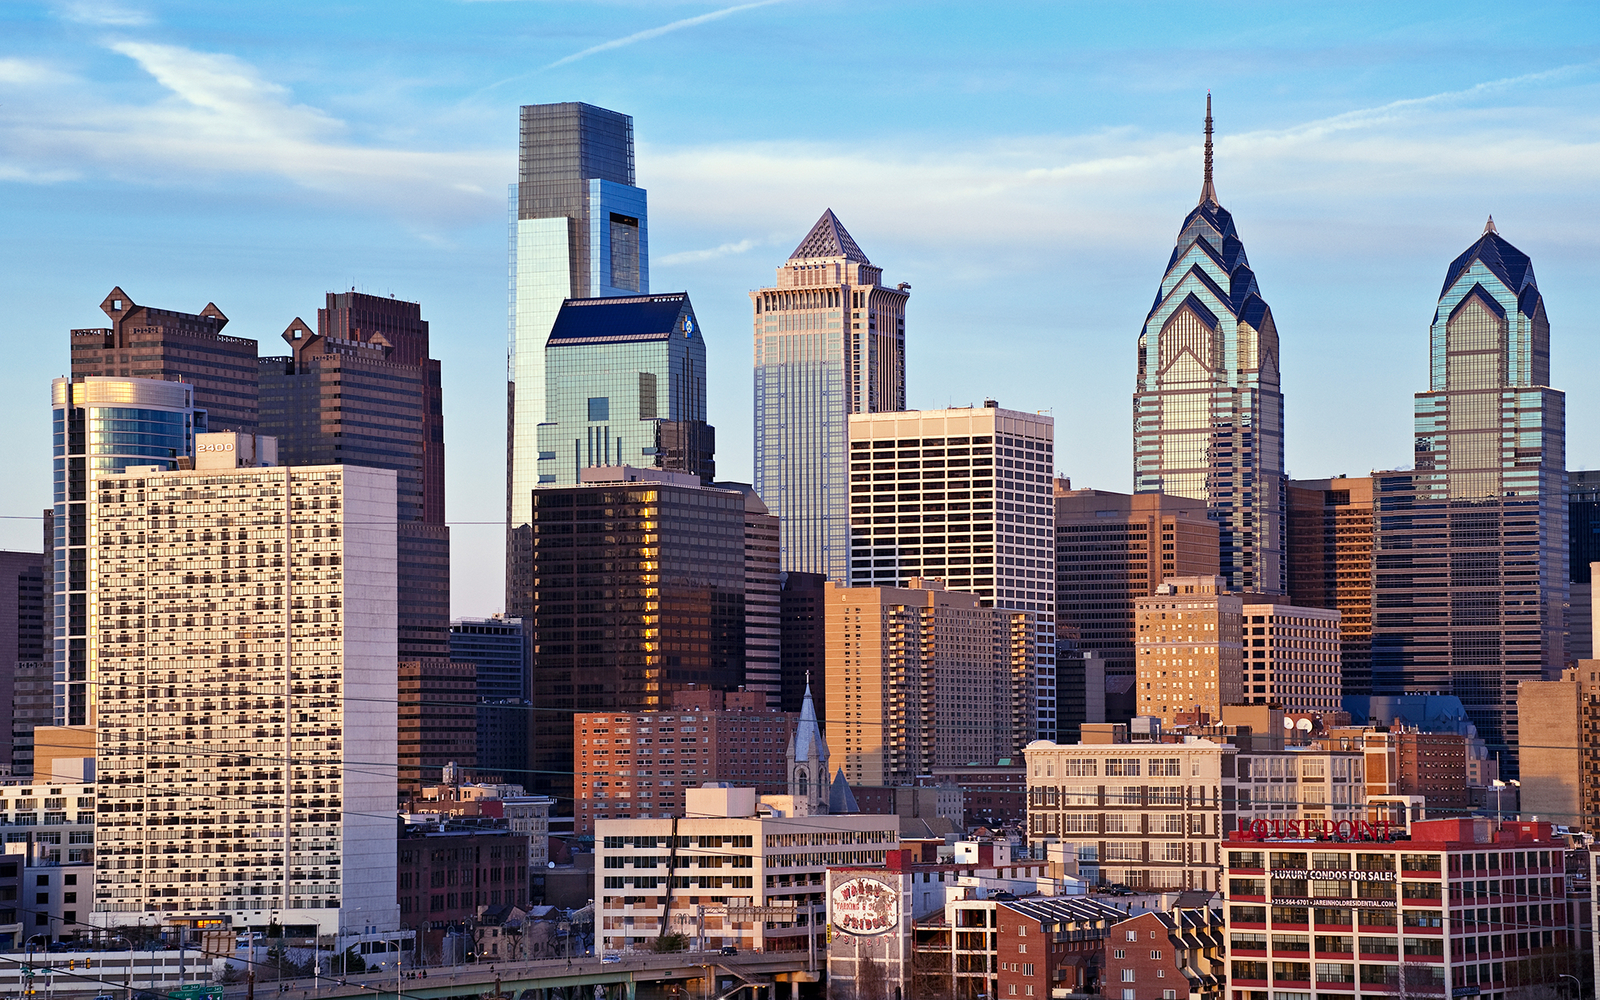 2018 Conferences - ASEAN Australia Education Dialogue, 21 - 23 March, PenangAPAIE Singapore 25 - 29 MarchGoing Global 2-4 May 2018, Kuala Lumpur, MalaysiaGlobal Internship Conference June 12 - 15 Detroit, MichiganNAFSA May 27 - June 1 Philadelphia (Pictured)